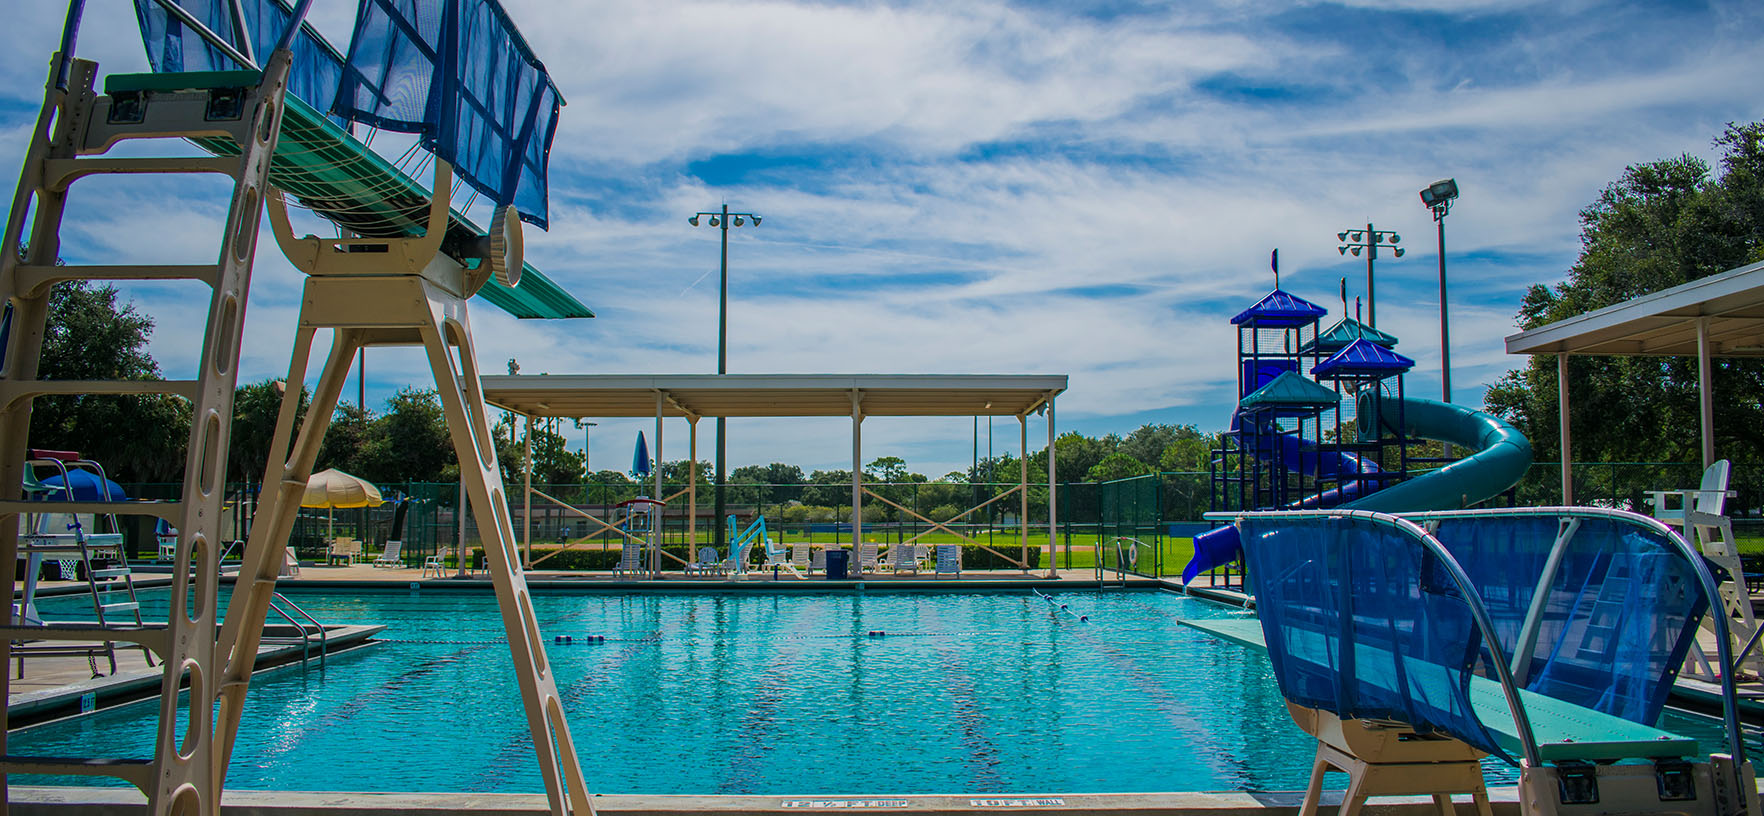 Fossil Park Pool Diving Boards